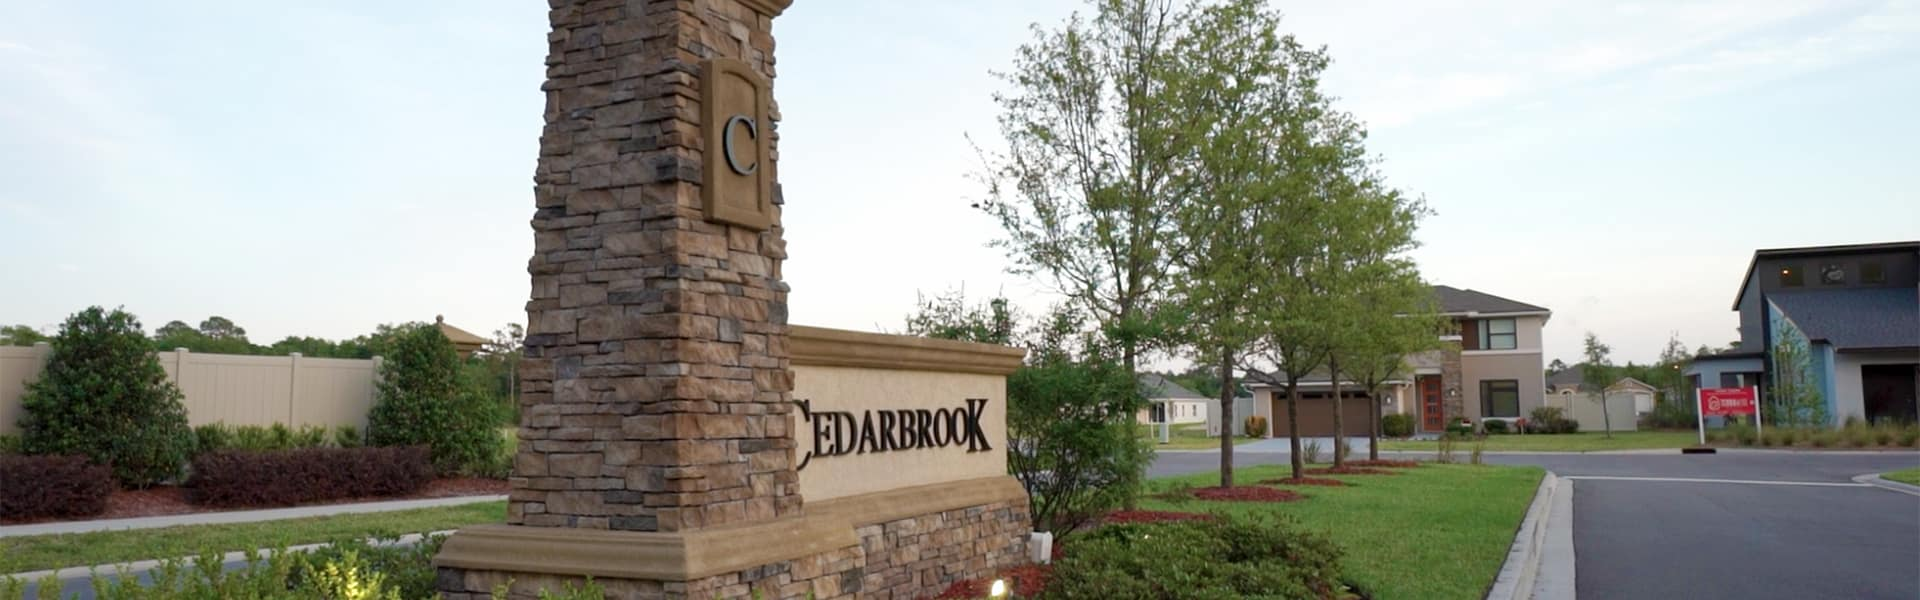 Cedarbrook community in Oceanway on Jacksonville`s Northside.